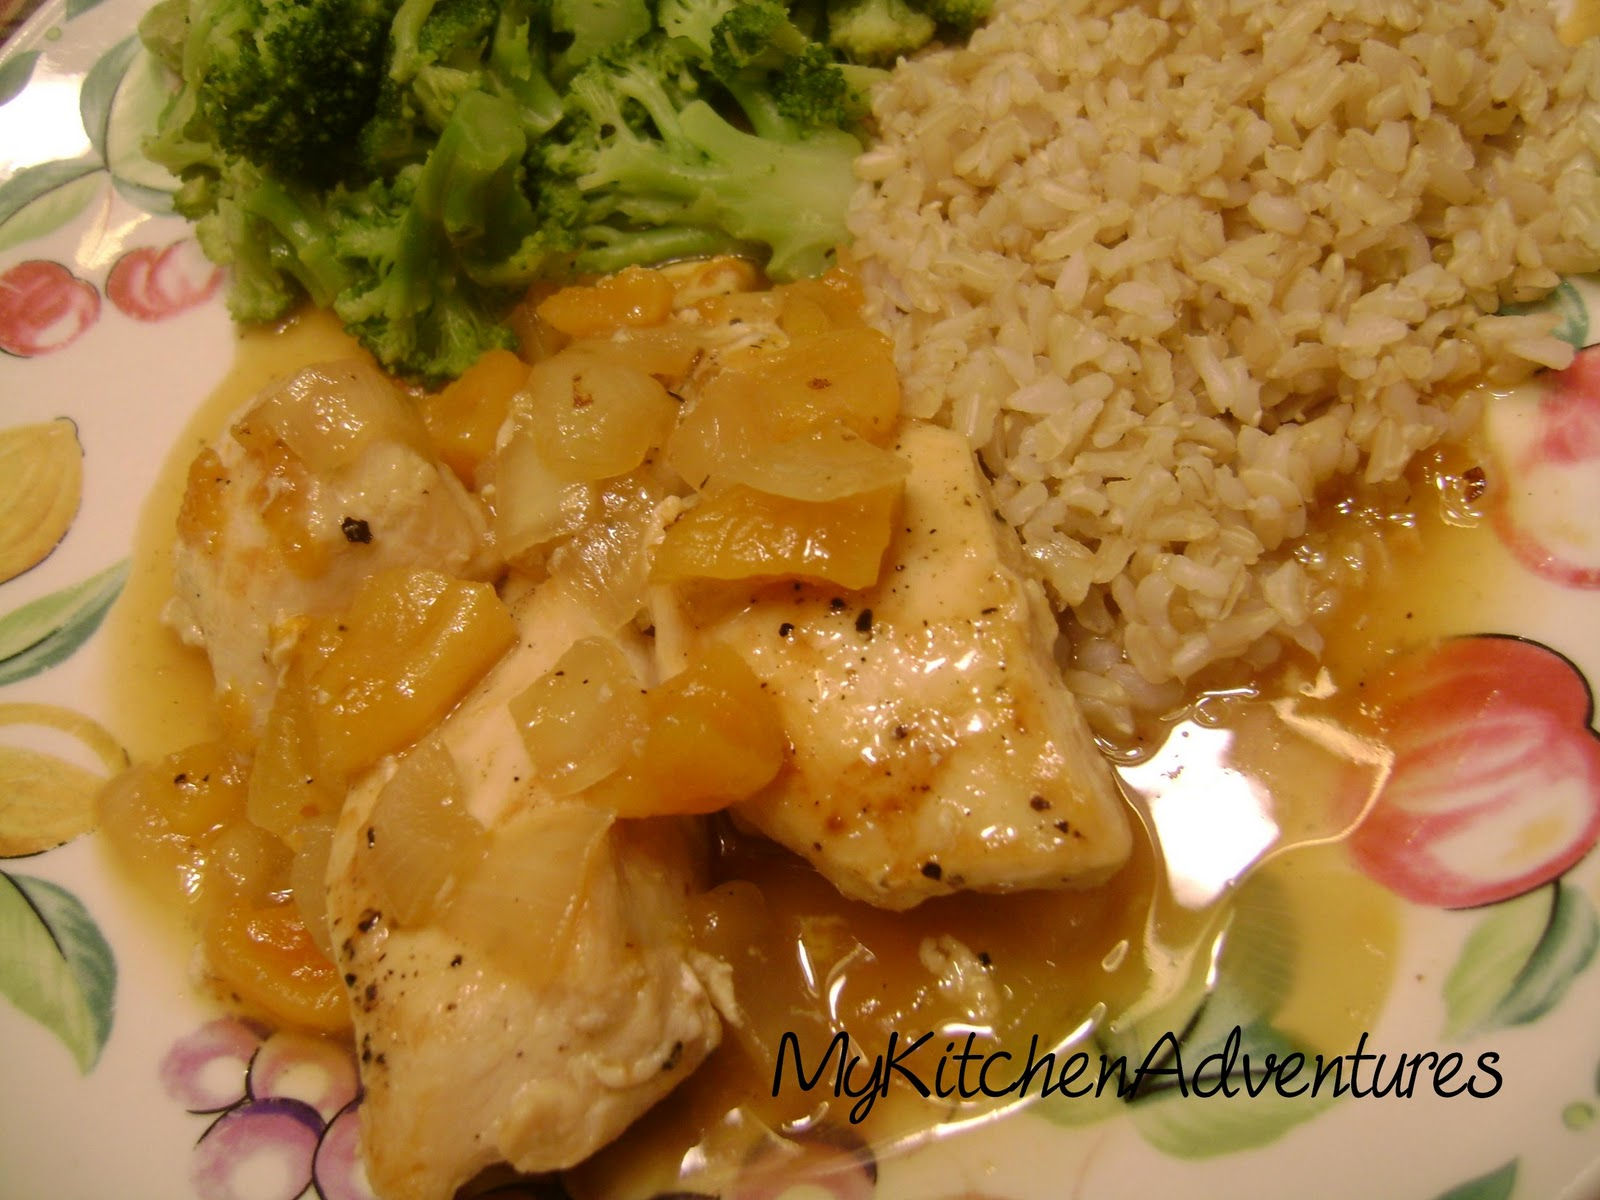 apricot glazed chicken apricot d i jon glazed chicken and i s apricot ...